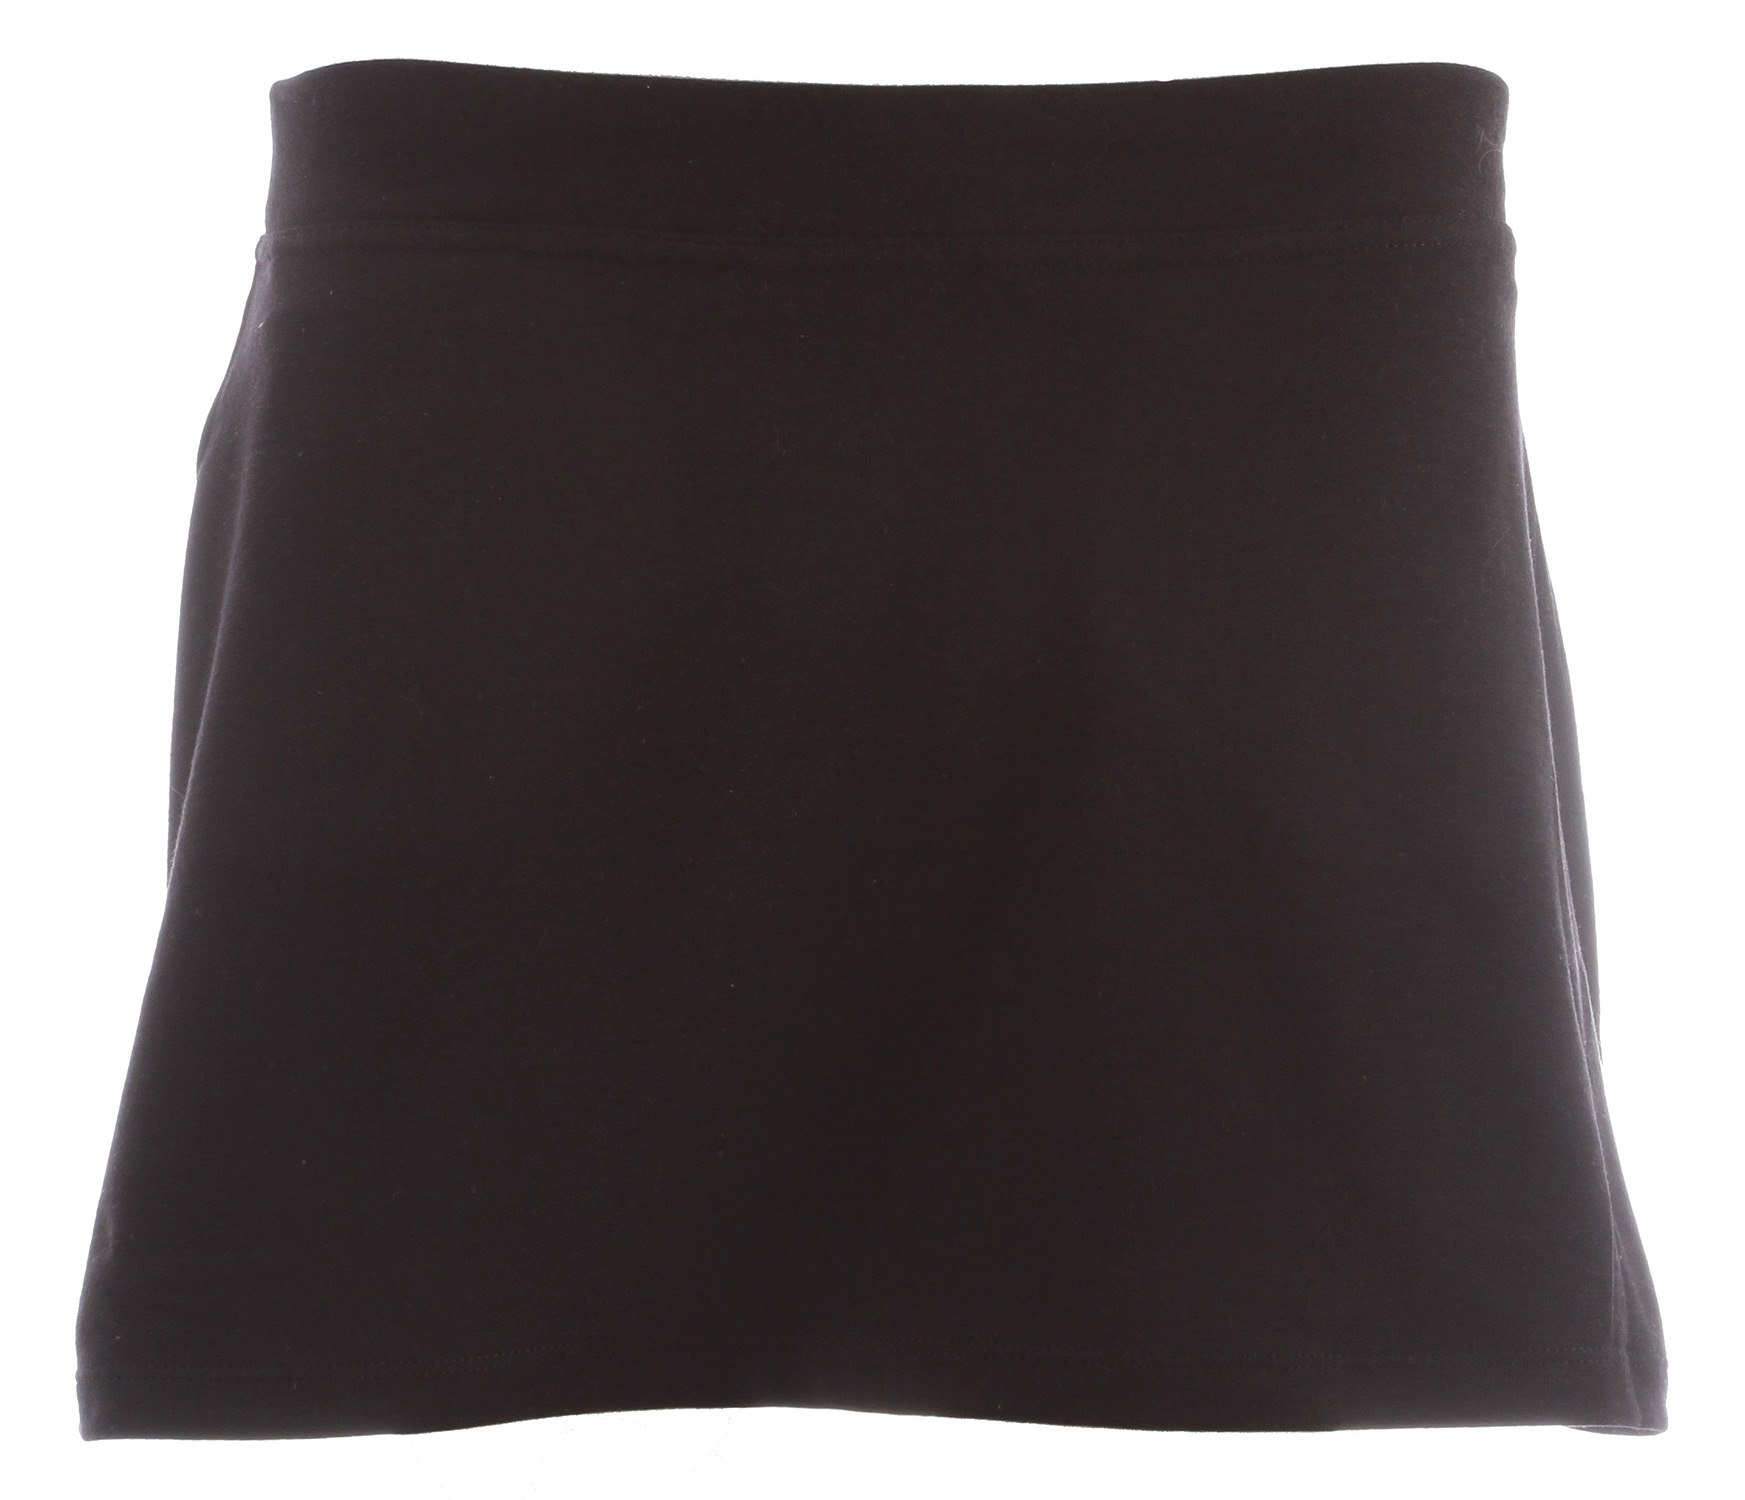 "Key Features of the Prana Sugar Mini Skirt: Veeda fabrication Built in short for versatility Low profile streamlined waistband Lined gusset for added comfort 2.5"" interior short inseam, 13.5"" skirt outseam (S) Standard fit Standard rise - $41.95"